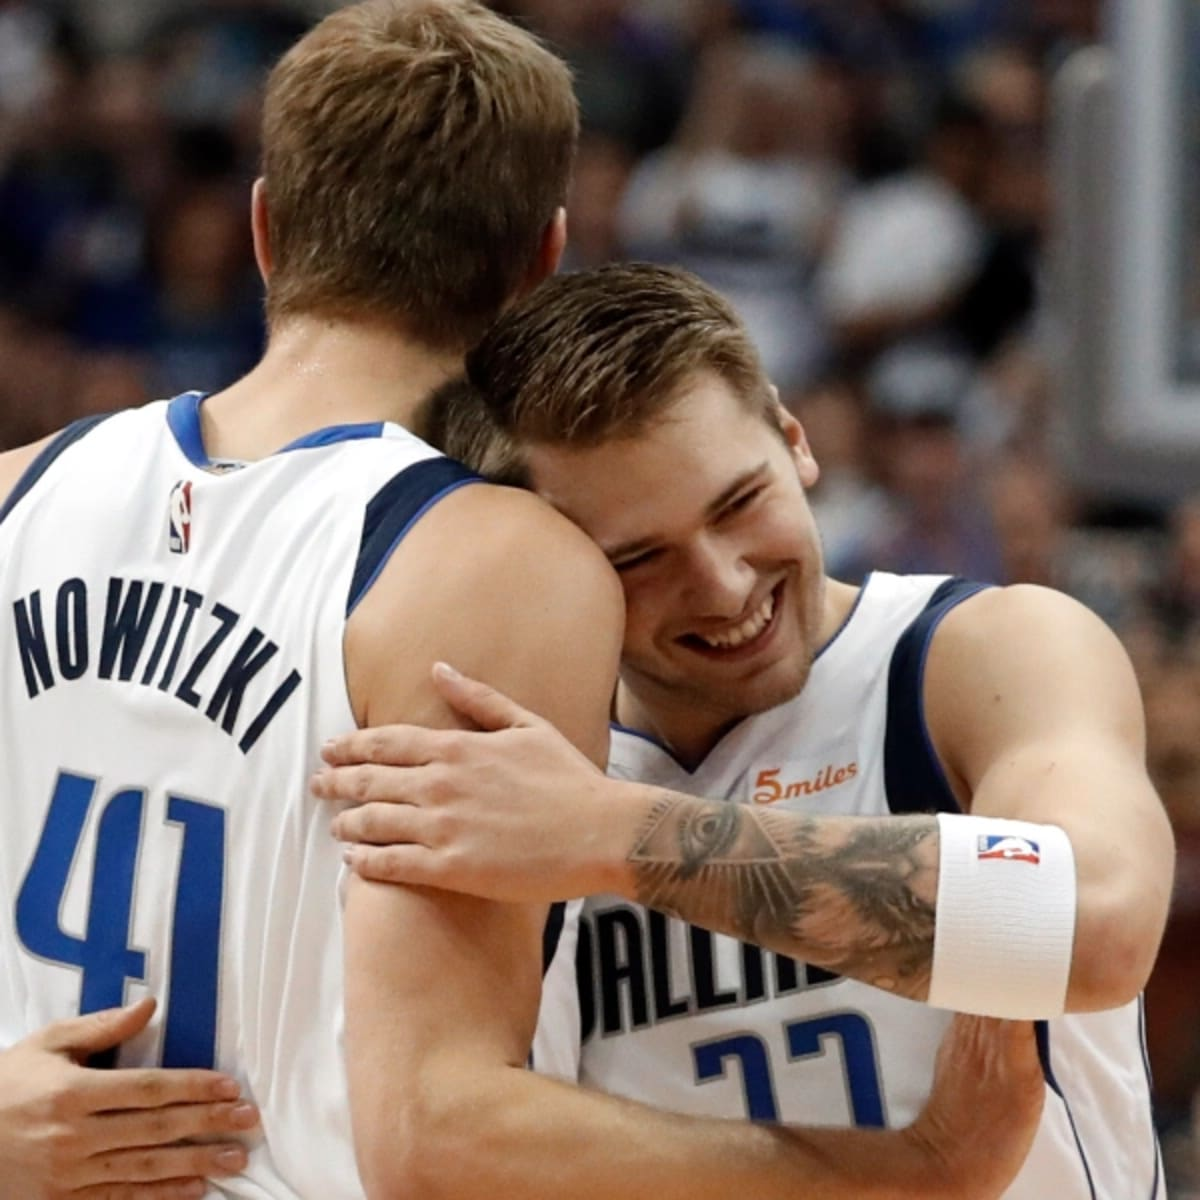 Rumor Dallas Mavs Luka Doncic Dirk Nowitzki To Be Featured On Nba 2k22 Covers Sports Illustrated Dallas Mavericks News Analysis And More